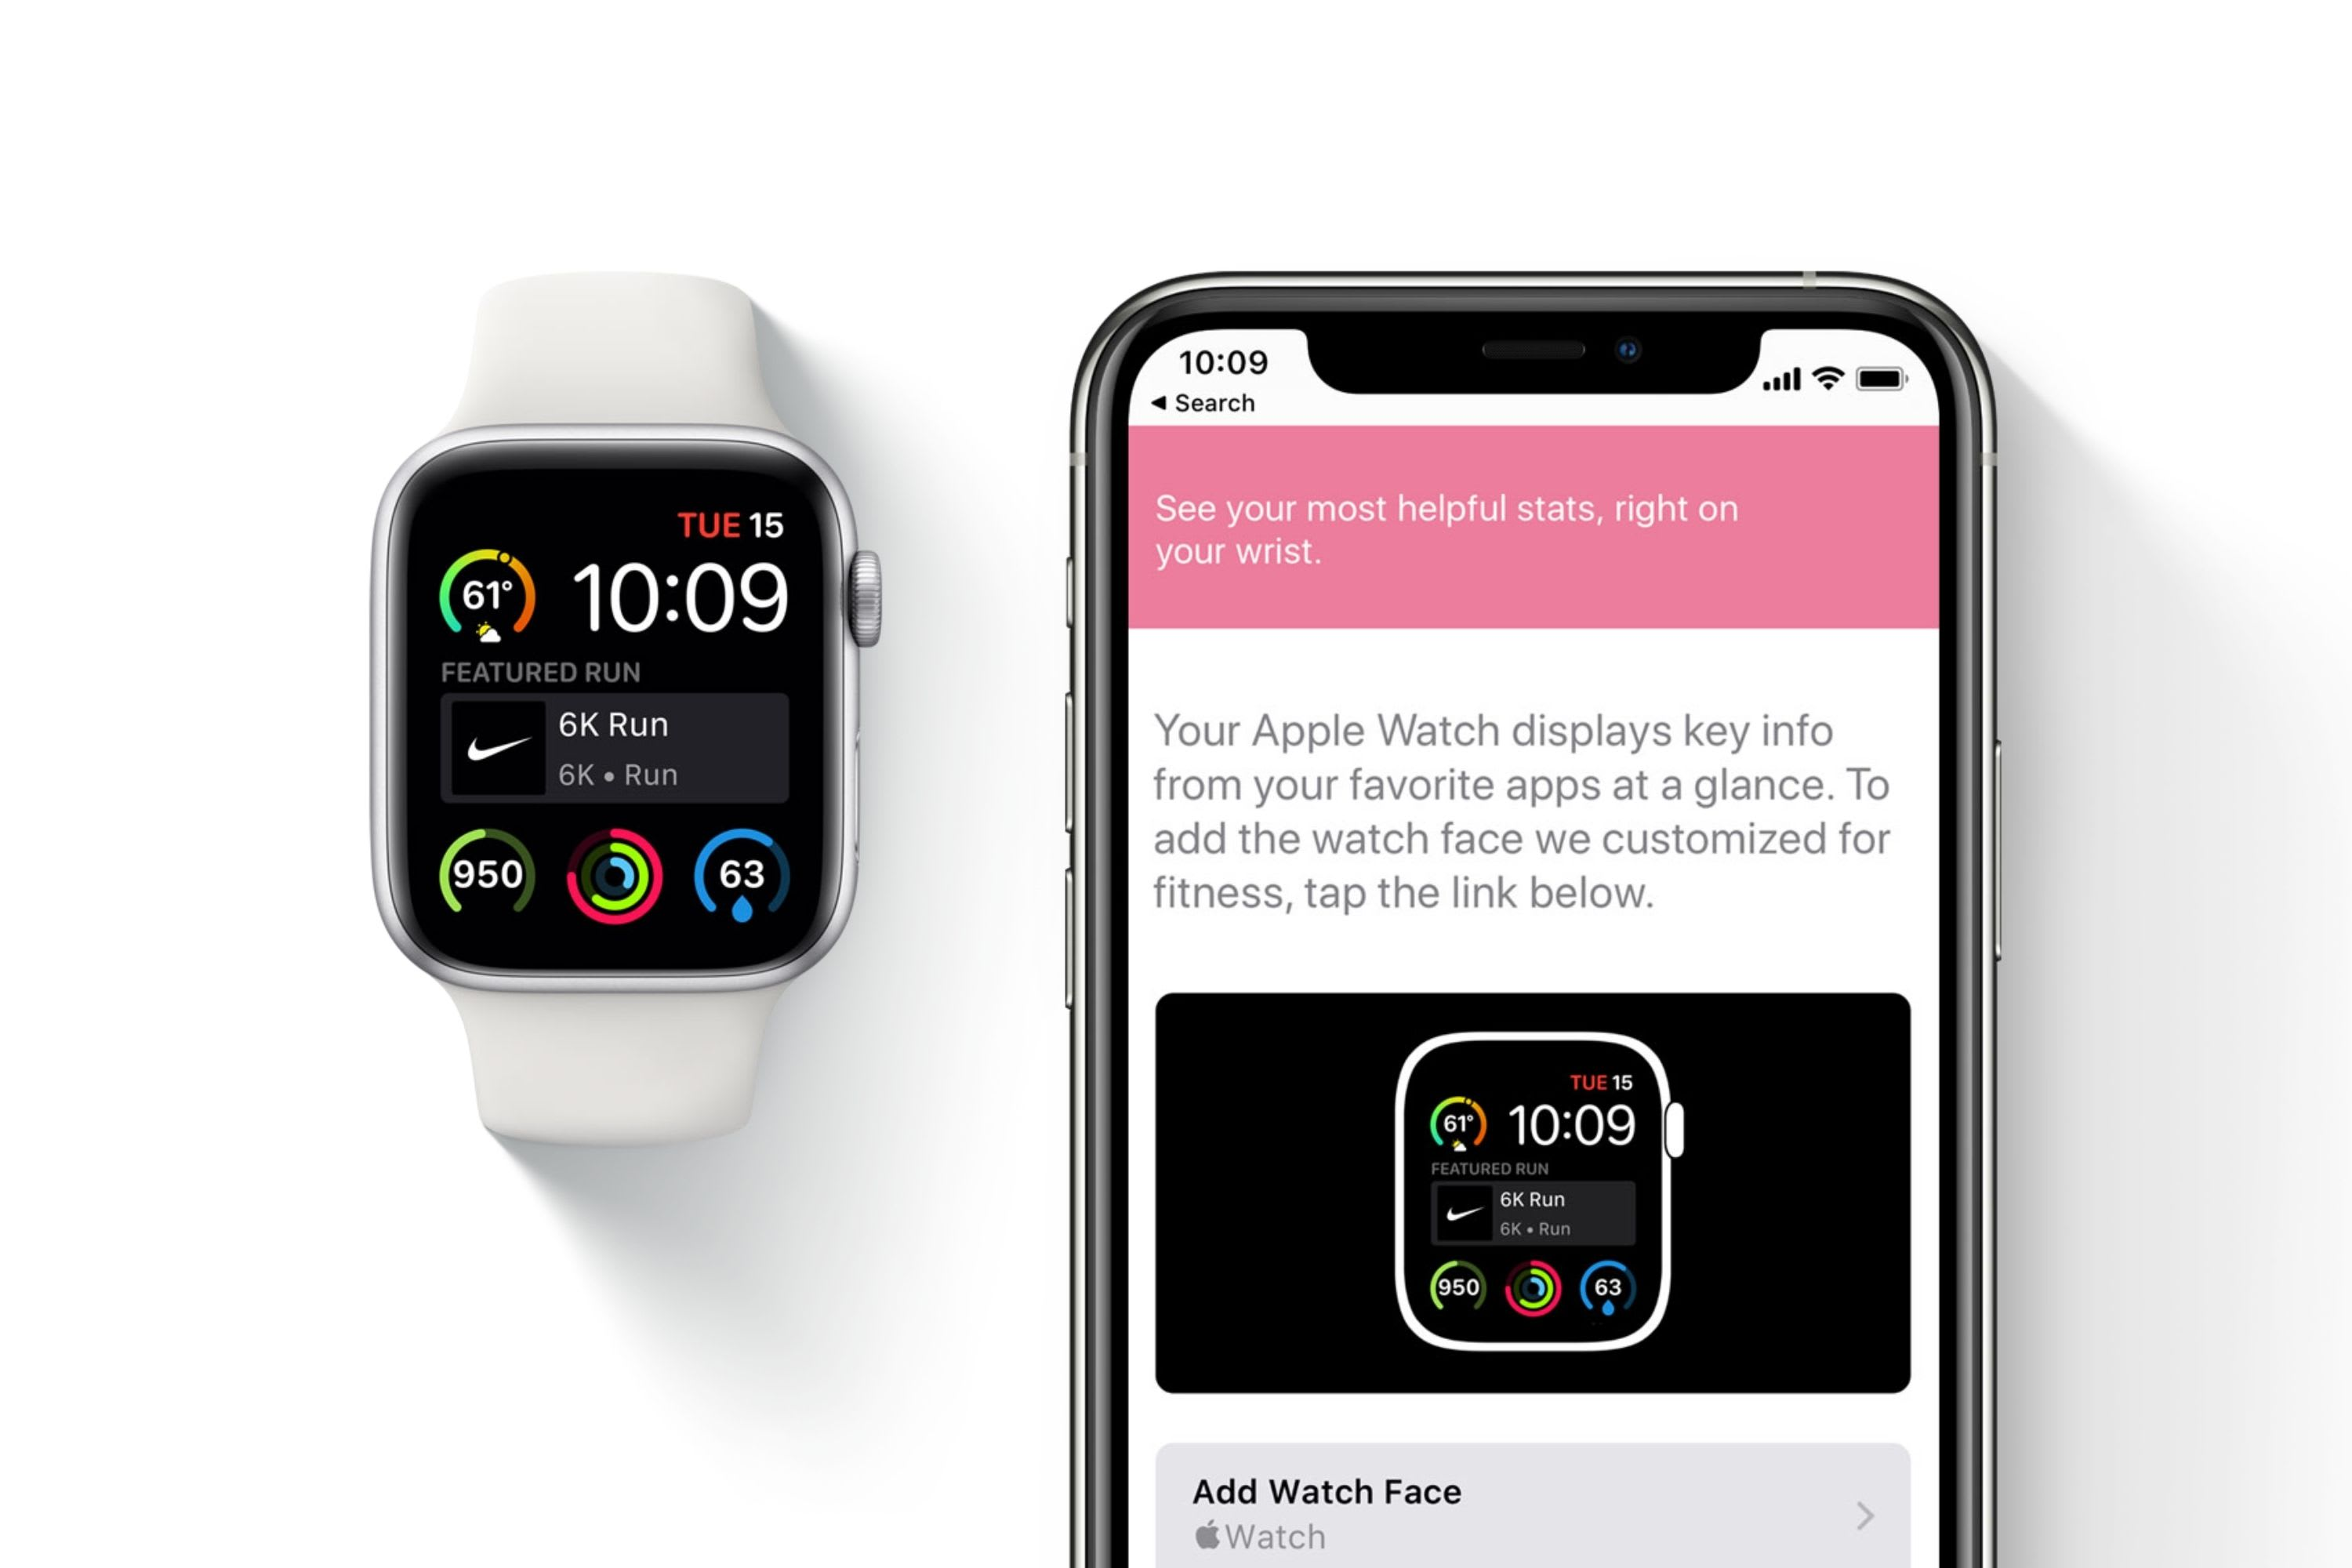 ipados-14-watchos-7-and-tvos-14-abrupt-release-what-you-need-to-know-20200916-1